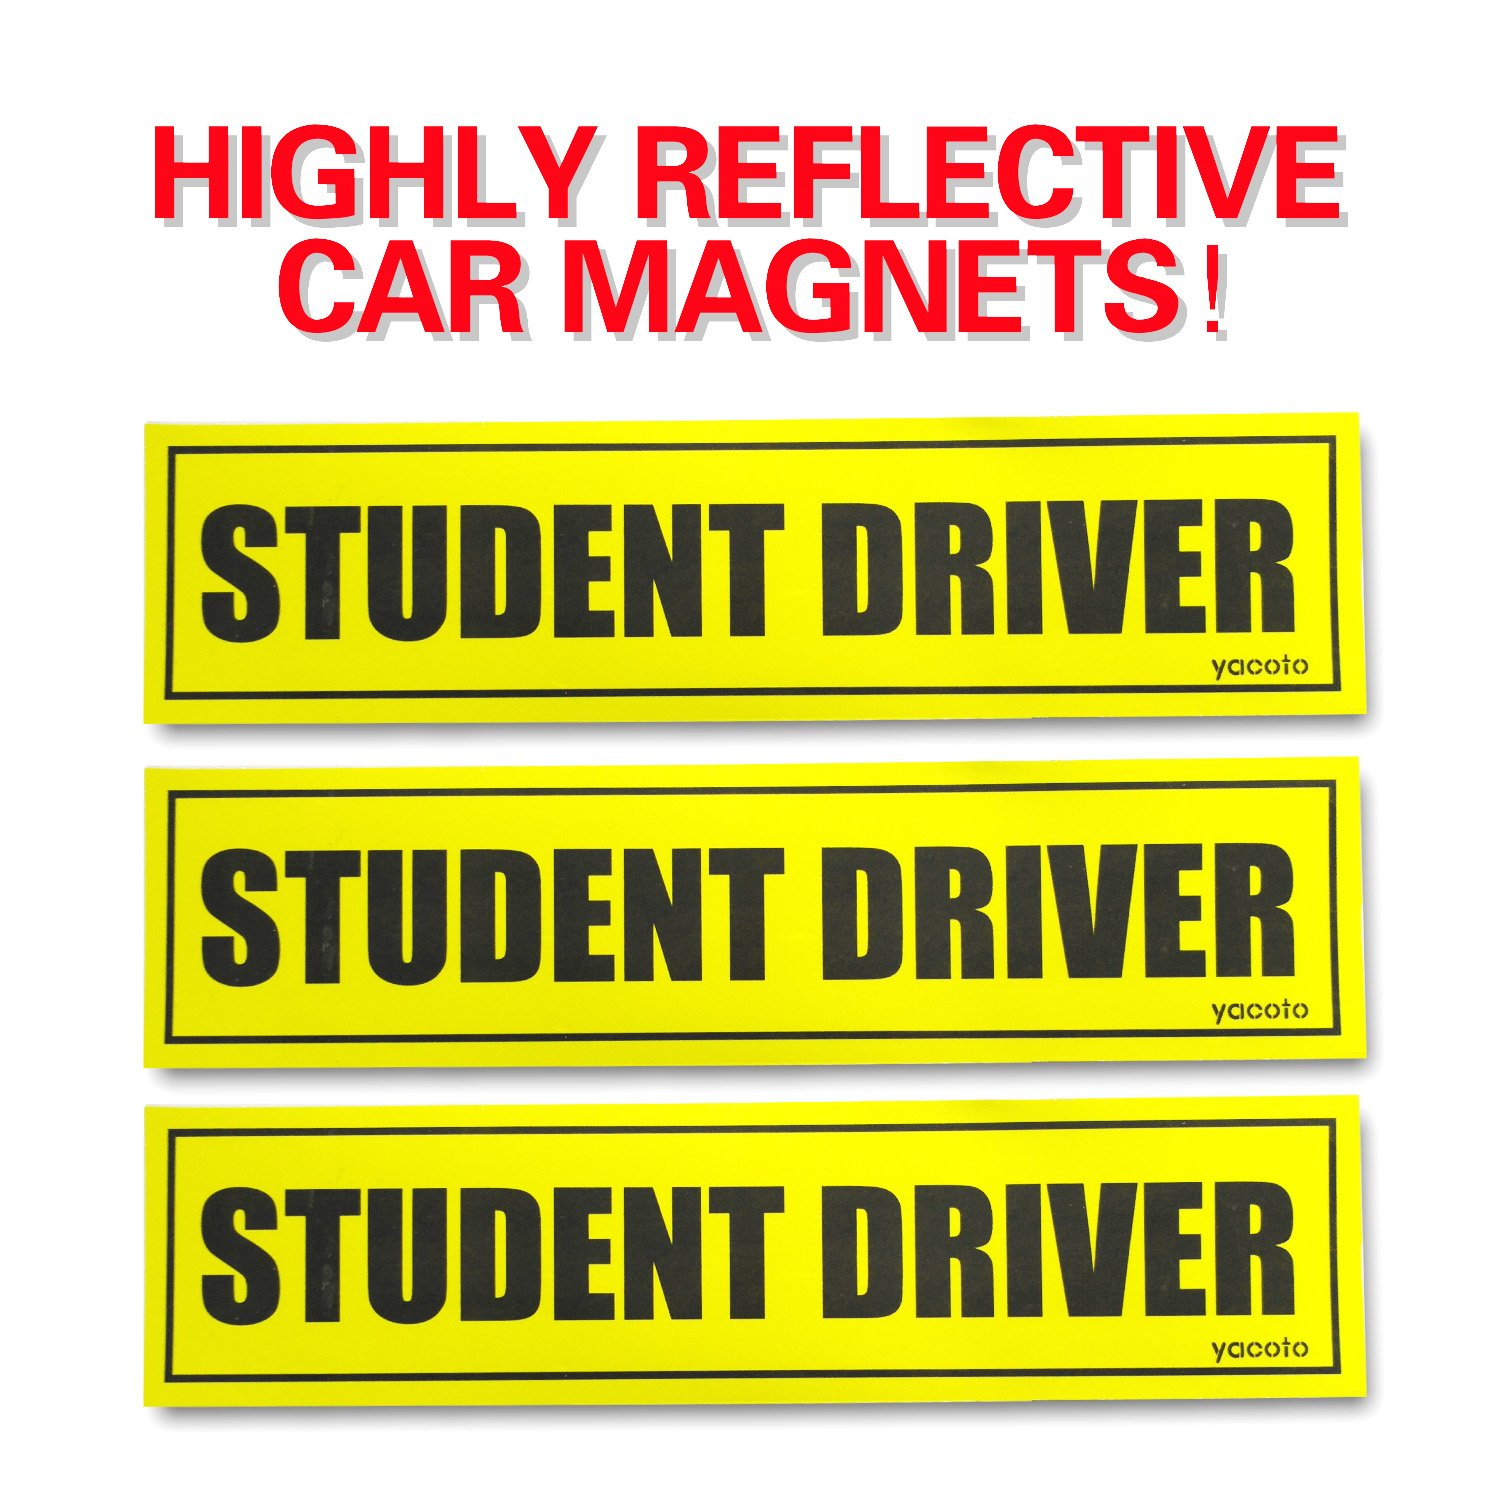 Set of 3 'Please Be Patient Student Driver' Safety Sign Vehicle Bumper Magnet - Reflective Vehicle Car Sign Sticker Bumper for New Drivers Yacoto